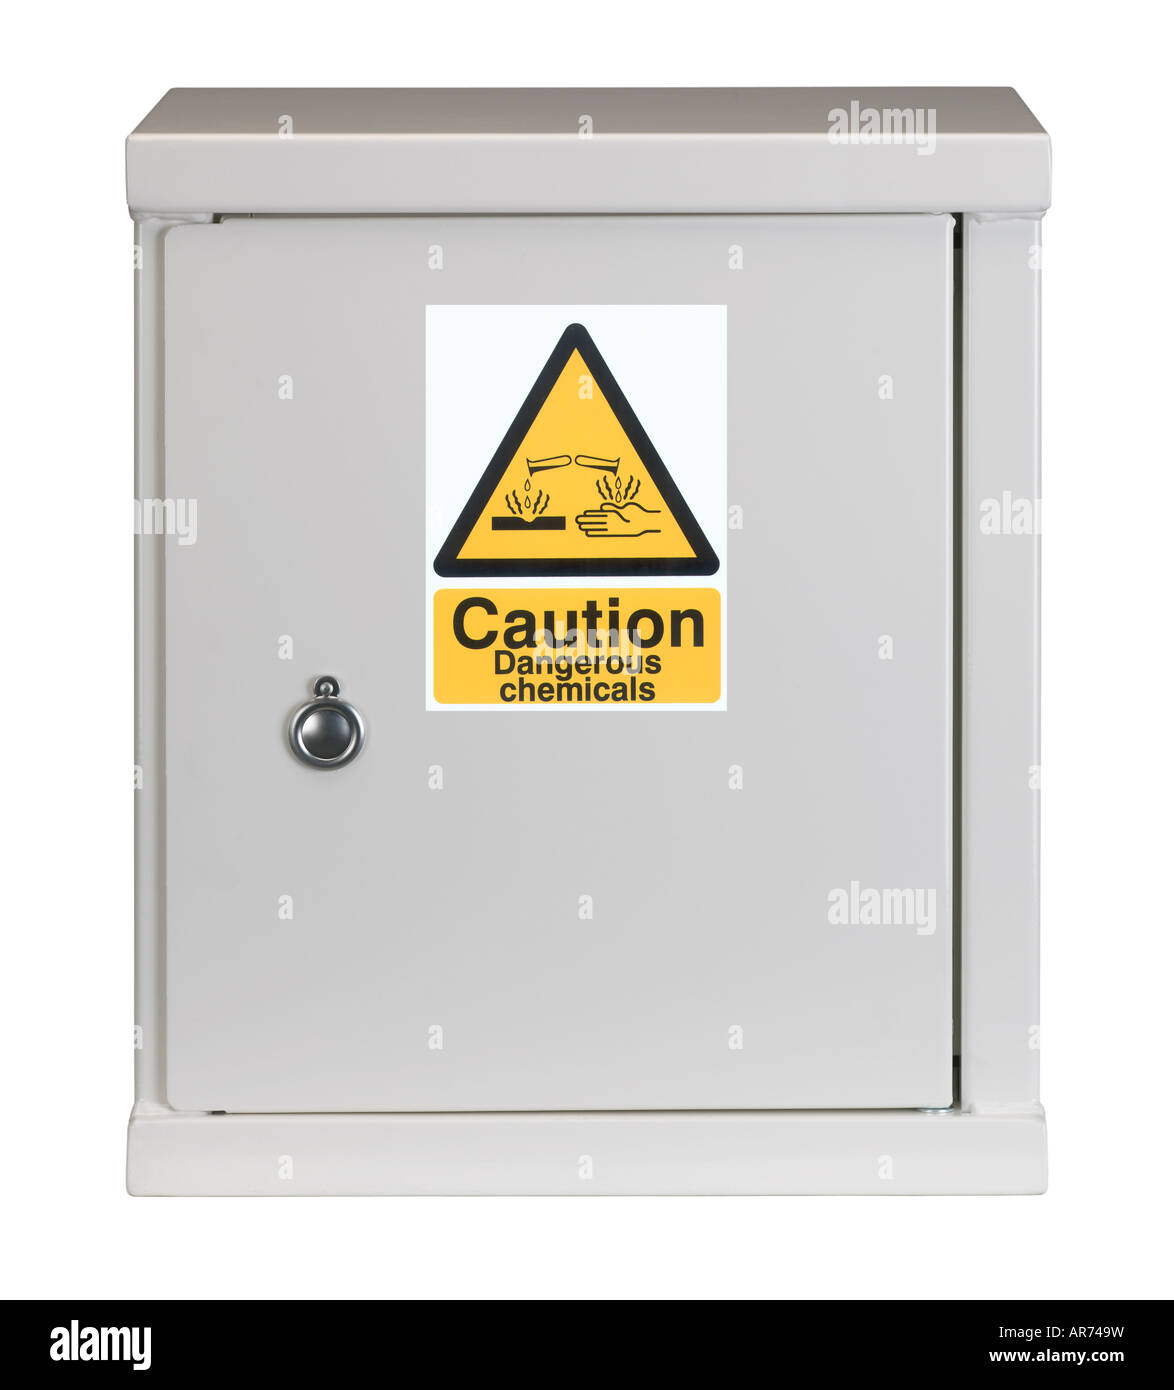 WHITE STEEL CABINET WITH DANGEROUS CHEMICAL WARNING SIGN ON DOOR - Stock Image